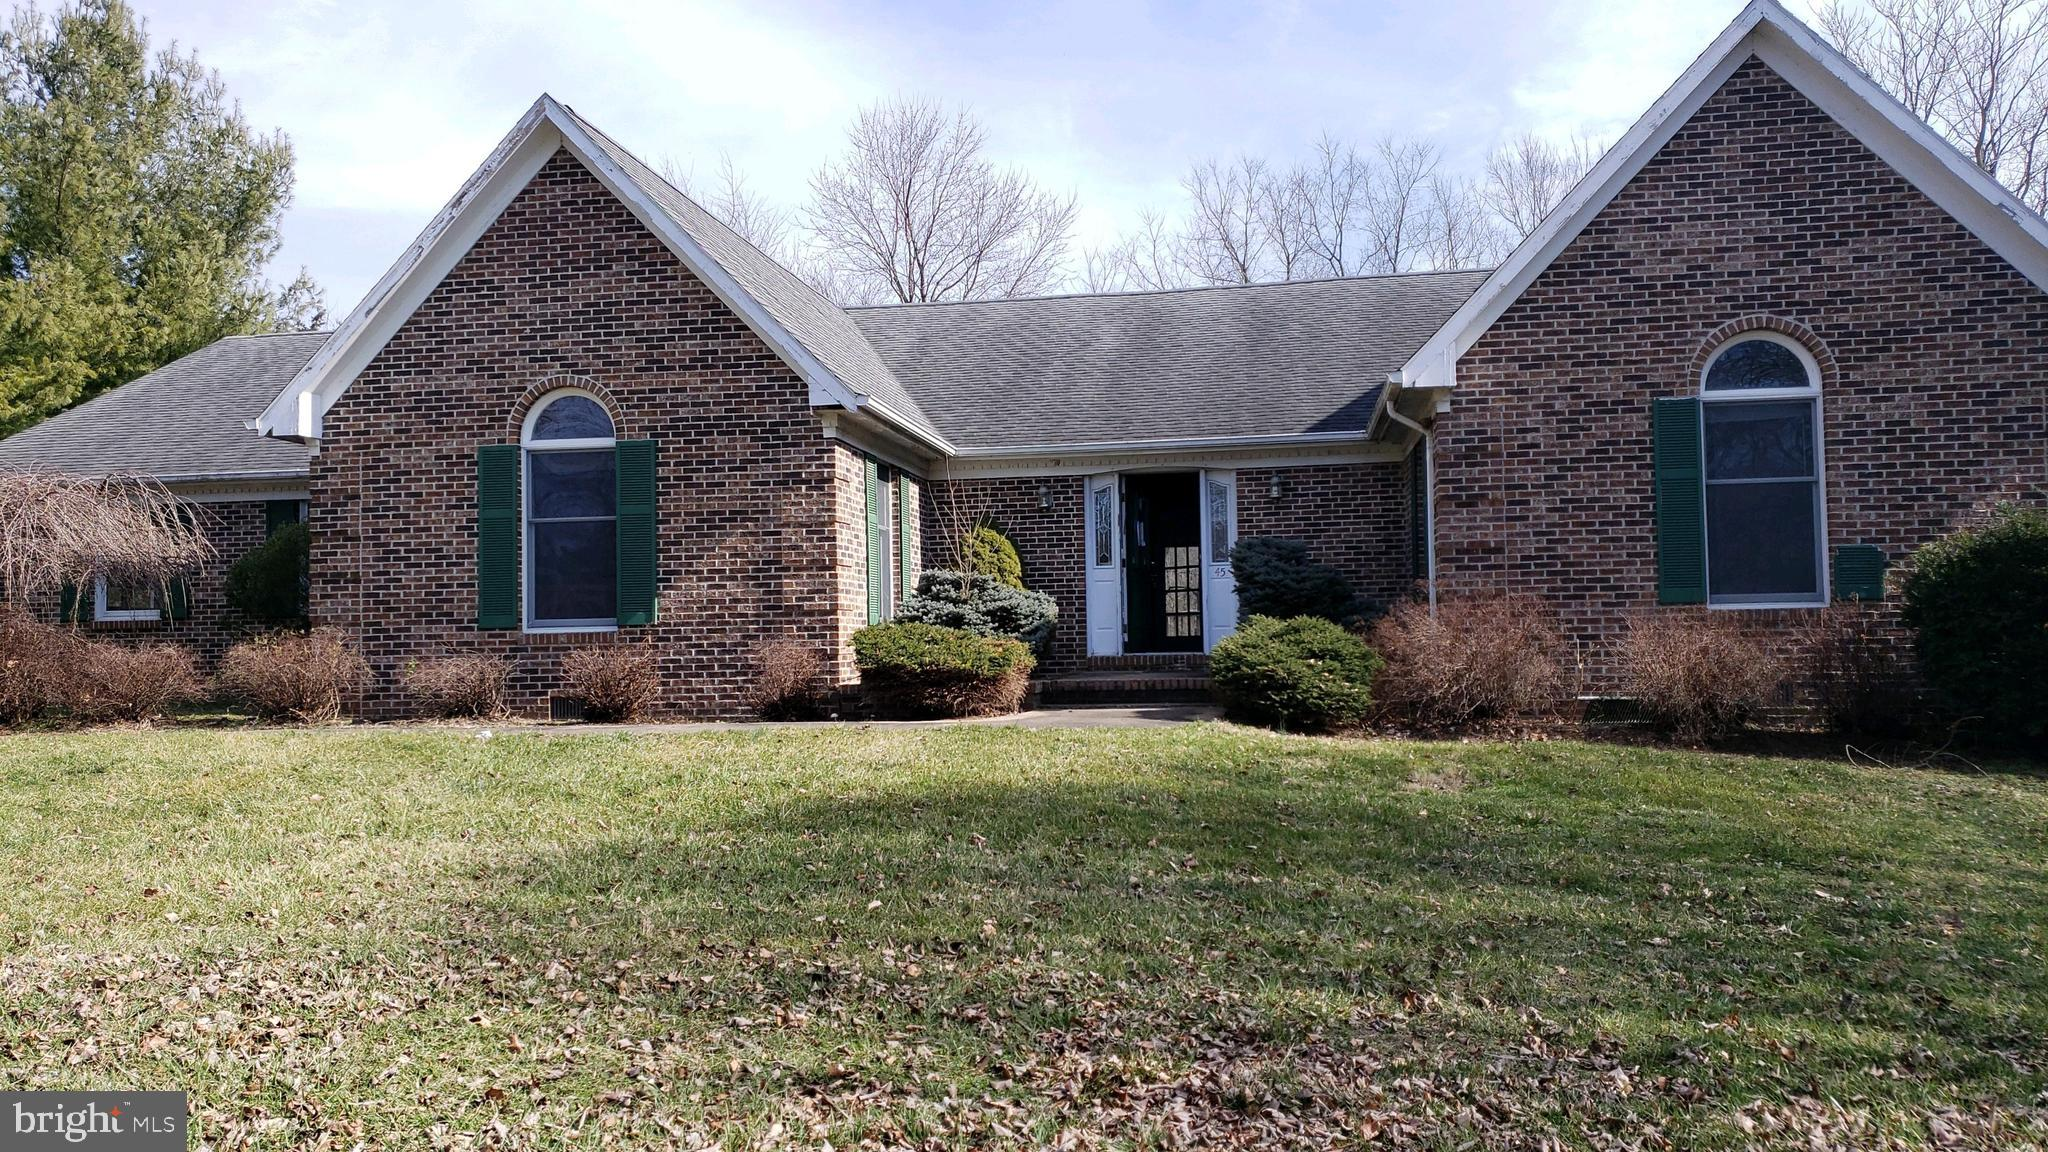 Brick Rancher featuring full basement large rec room with bar,   separate dining and living rooms, family room with fireplace.   Some hardwood floors, 4 bedrooms, 2.5 bathrooms Rear deck, 2 car garage on approx 1 acre, located in a cul-de-sac.